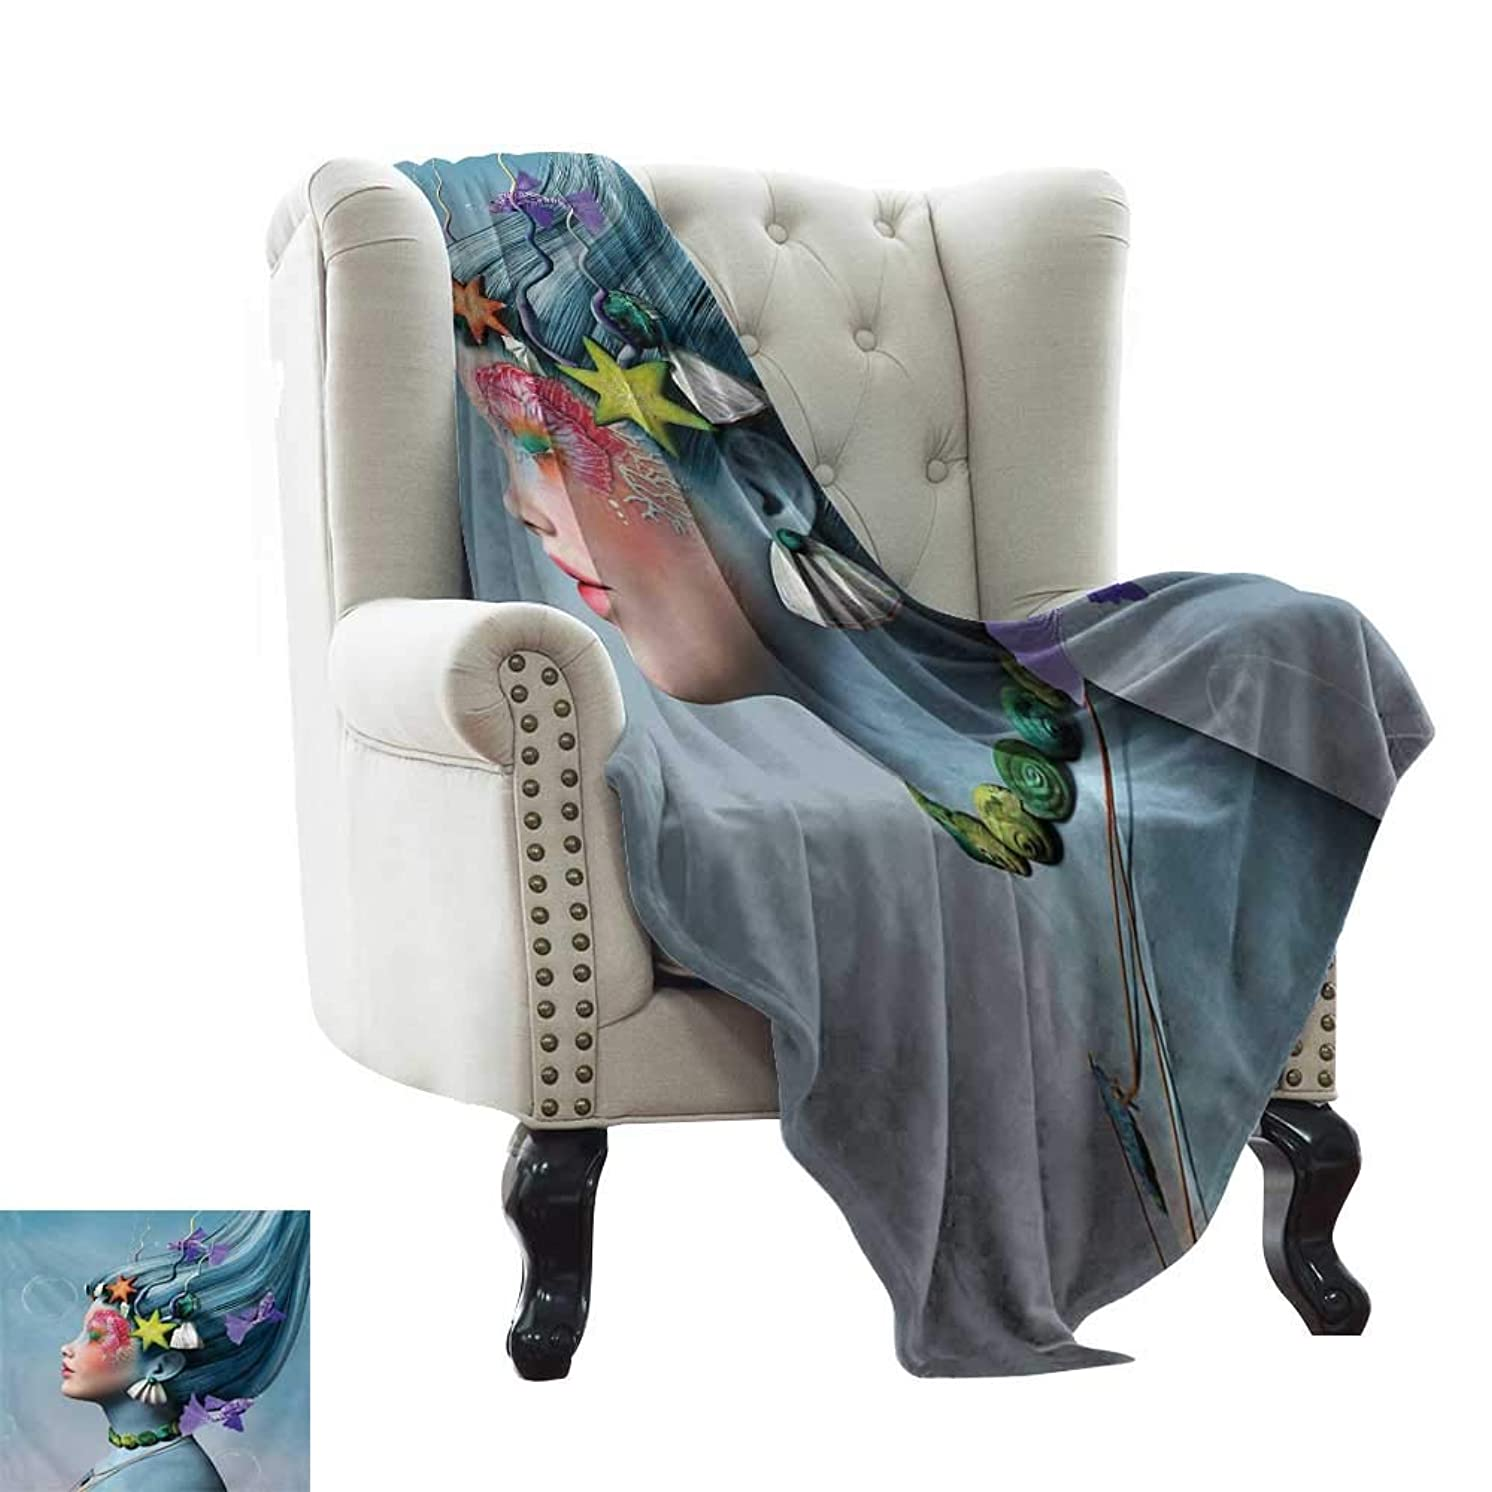 Weighted Blanket for Kids Mermaid,Woman with Underwater Themed Make Up Hairstyle Starfishes Seashells Fishes Bubbles,Multicolor Weighted for Adults Kids, Better Deeper Sleep 70